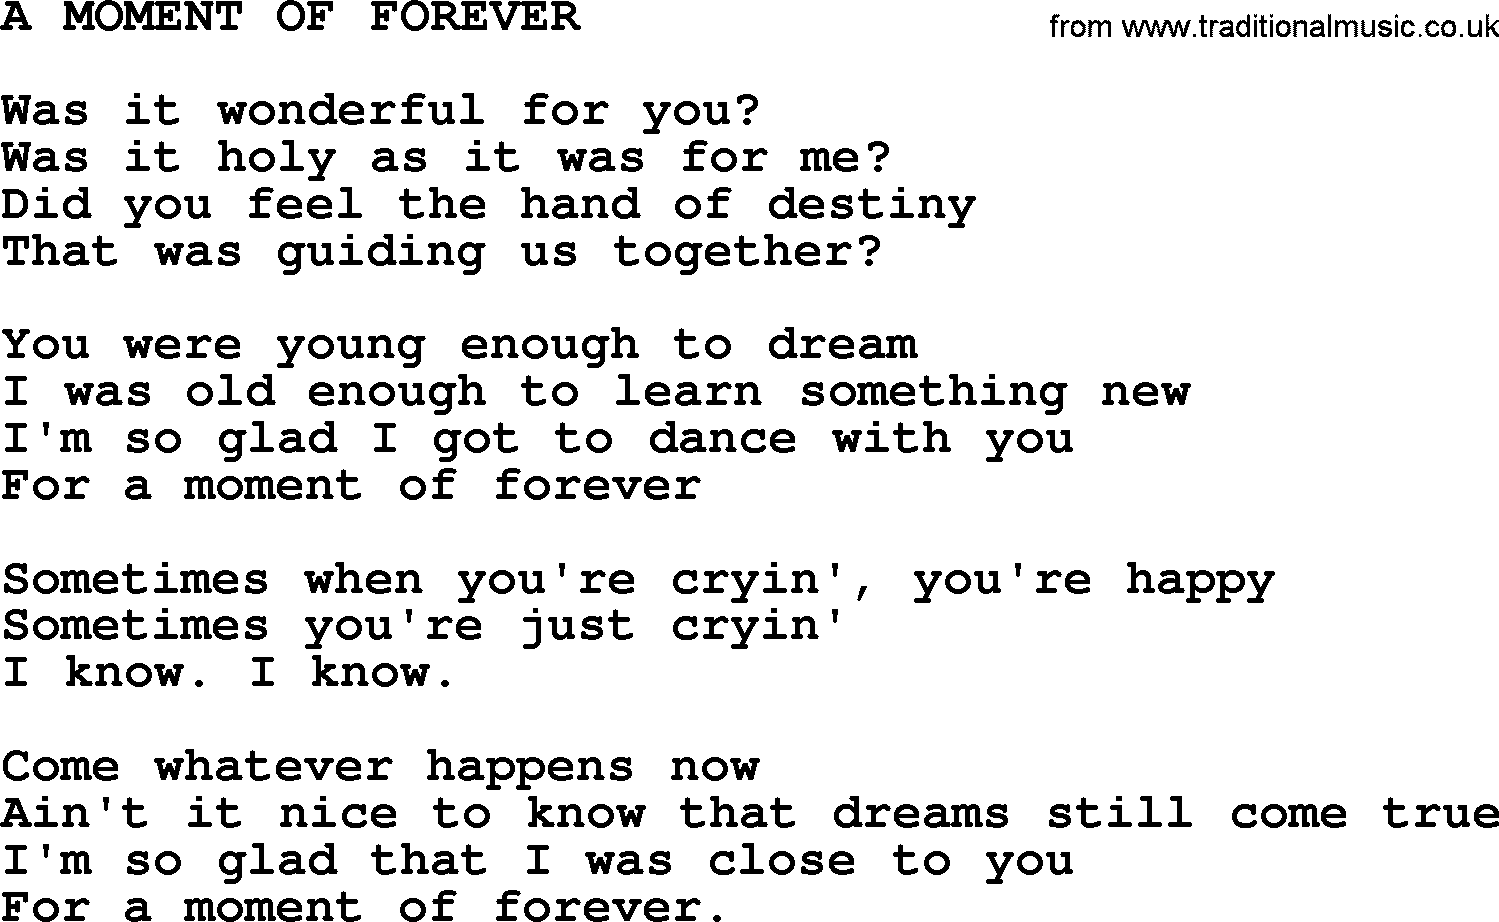 Kris kristofferson song a moment of forevertxt lyrics and chords kris kristofferson song a moment of forever lyrics hexwebz Image collections